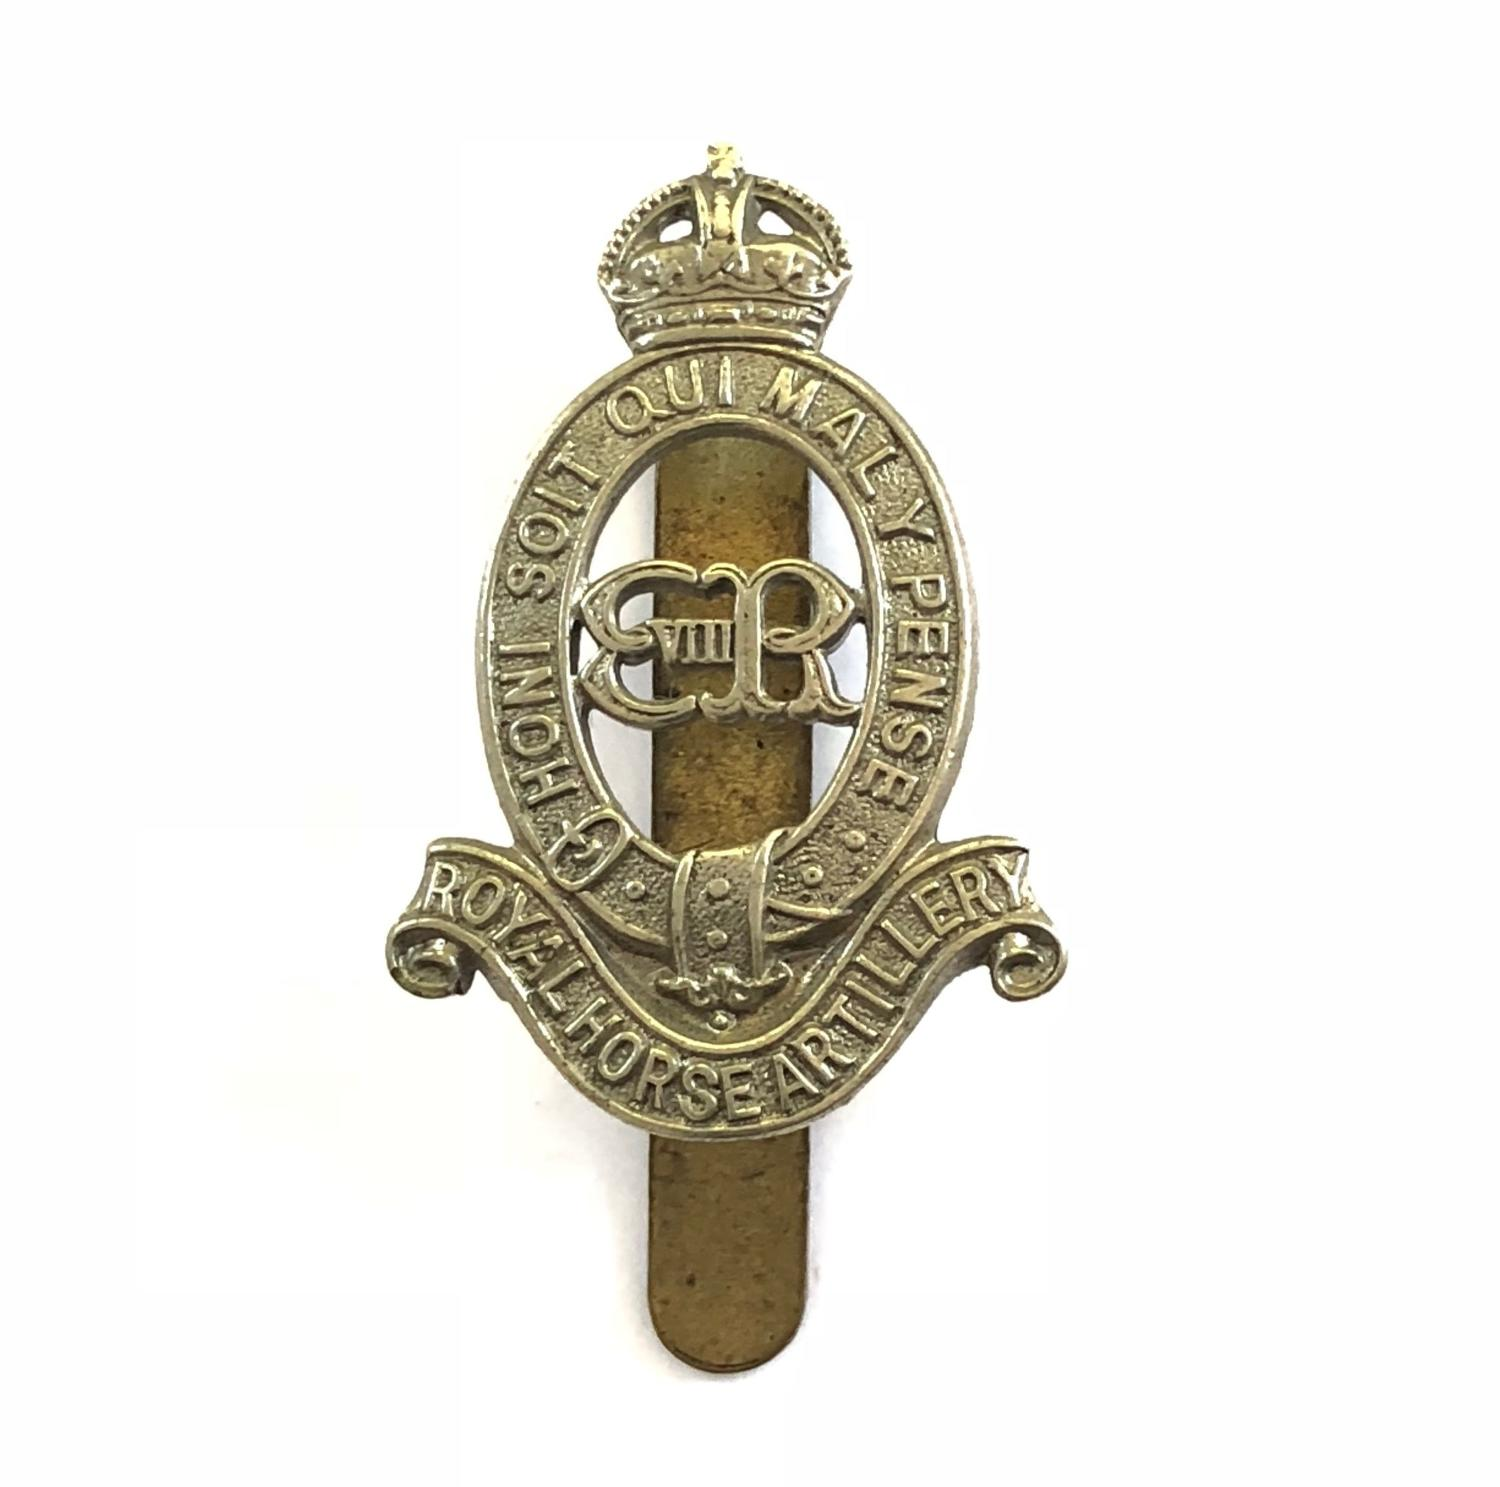 Royal Horse Artillery rare Edward VIII cap badge circa 1936